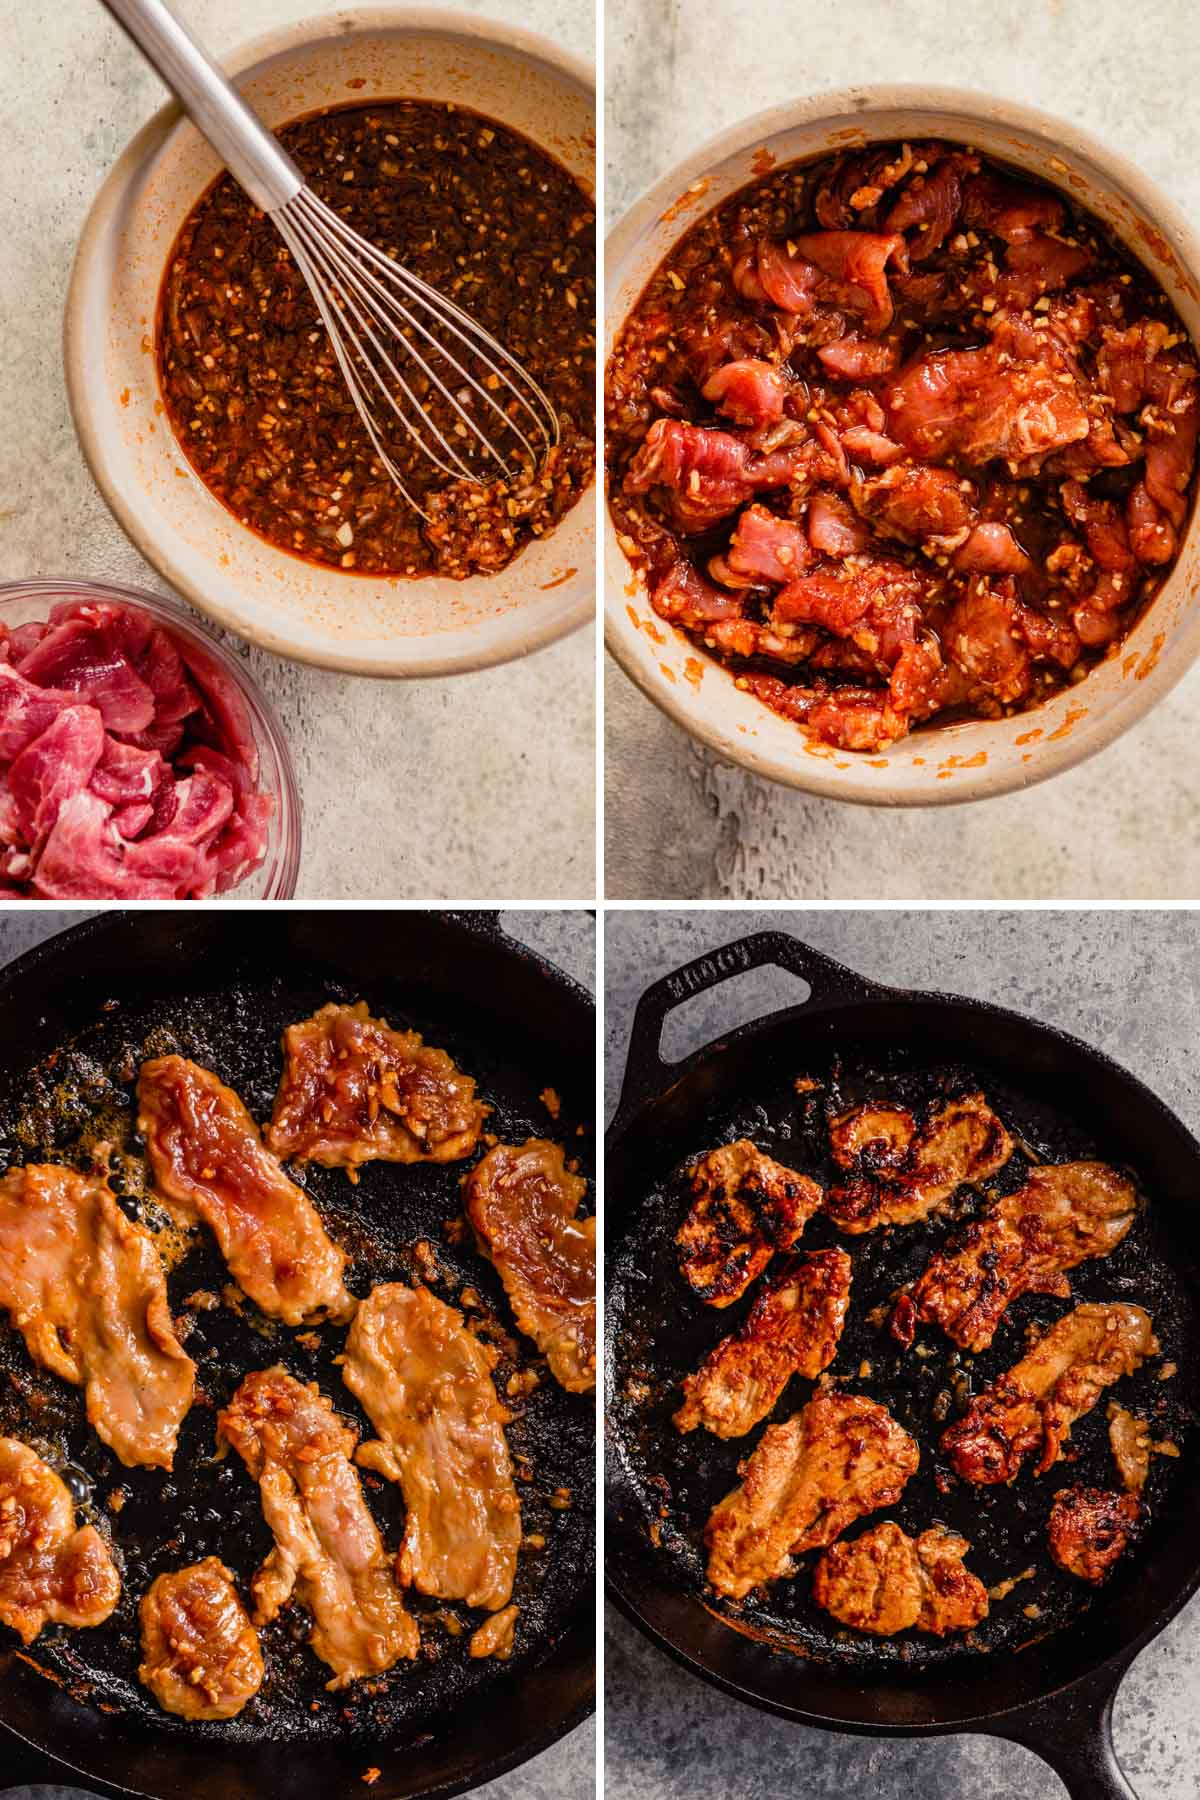 grid of images showing a marinade, meat in marinade, pork slices cooking a cast iron skillet